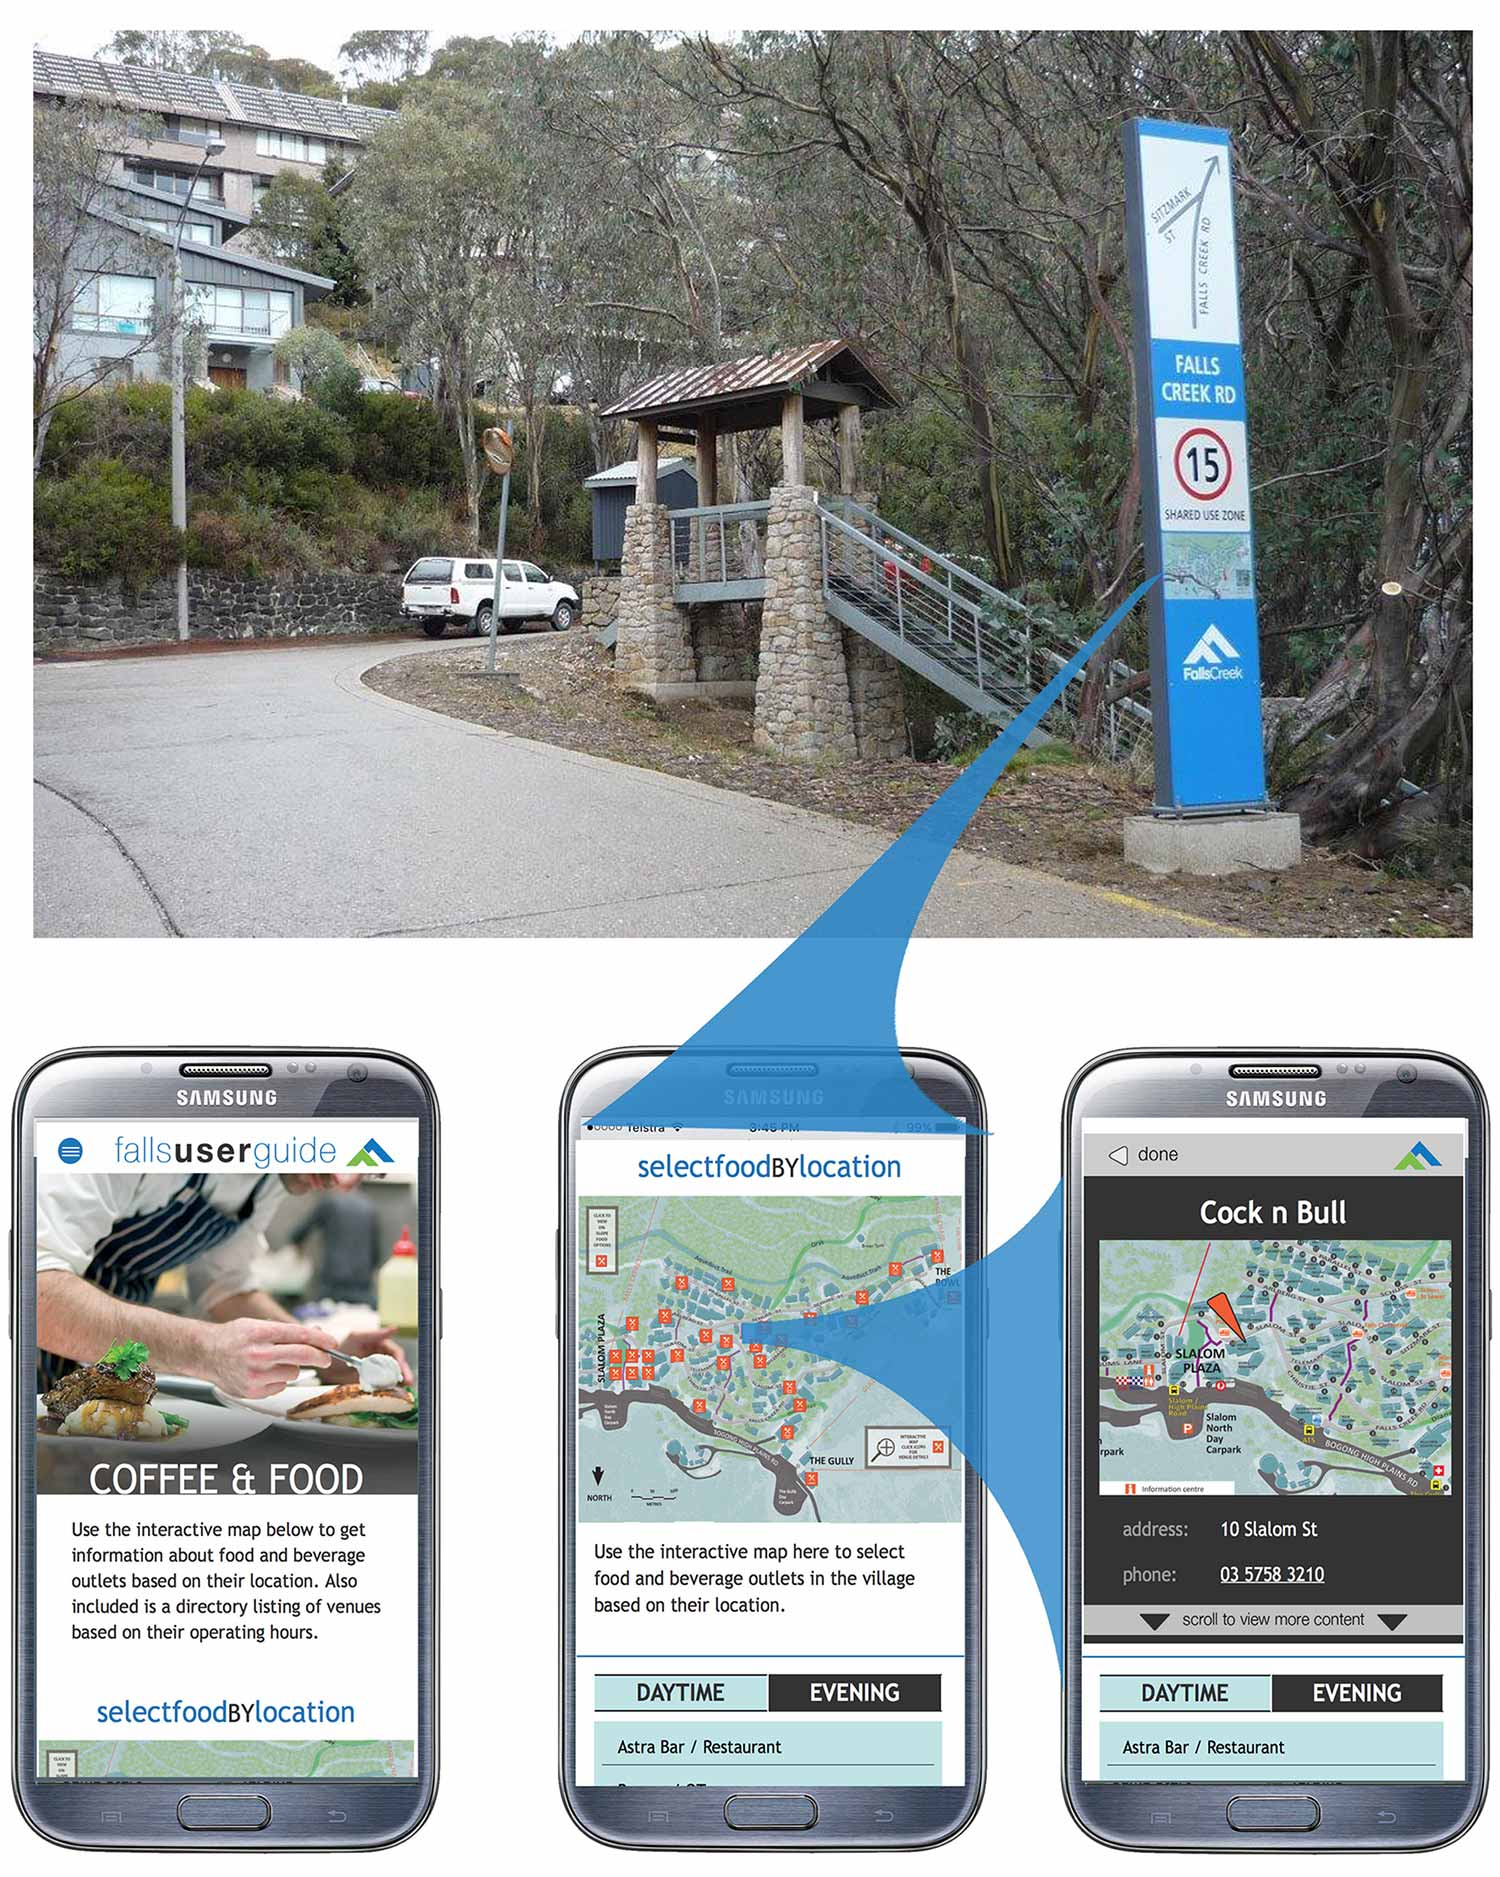 interpretive planning integrating signage and digital components at Falls Creek